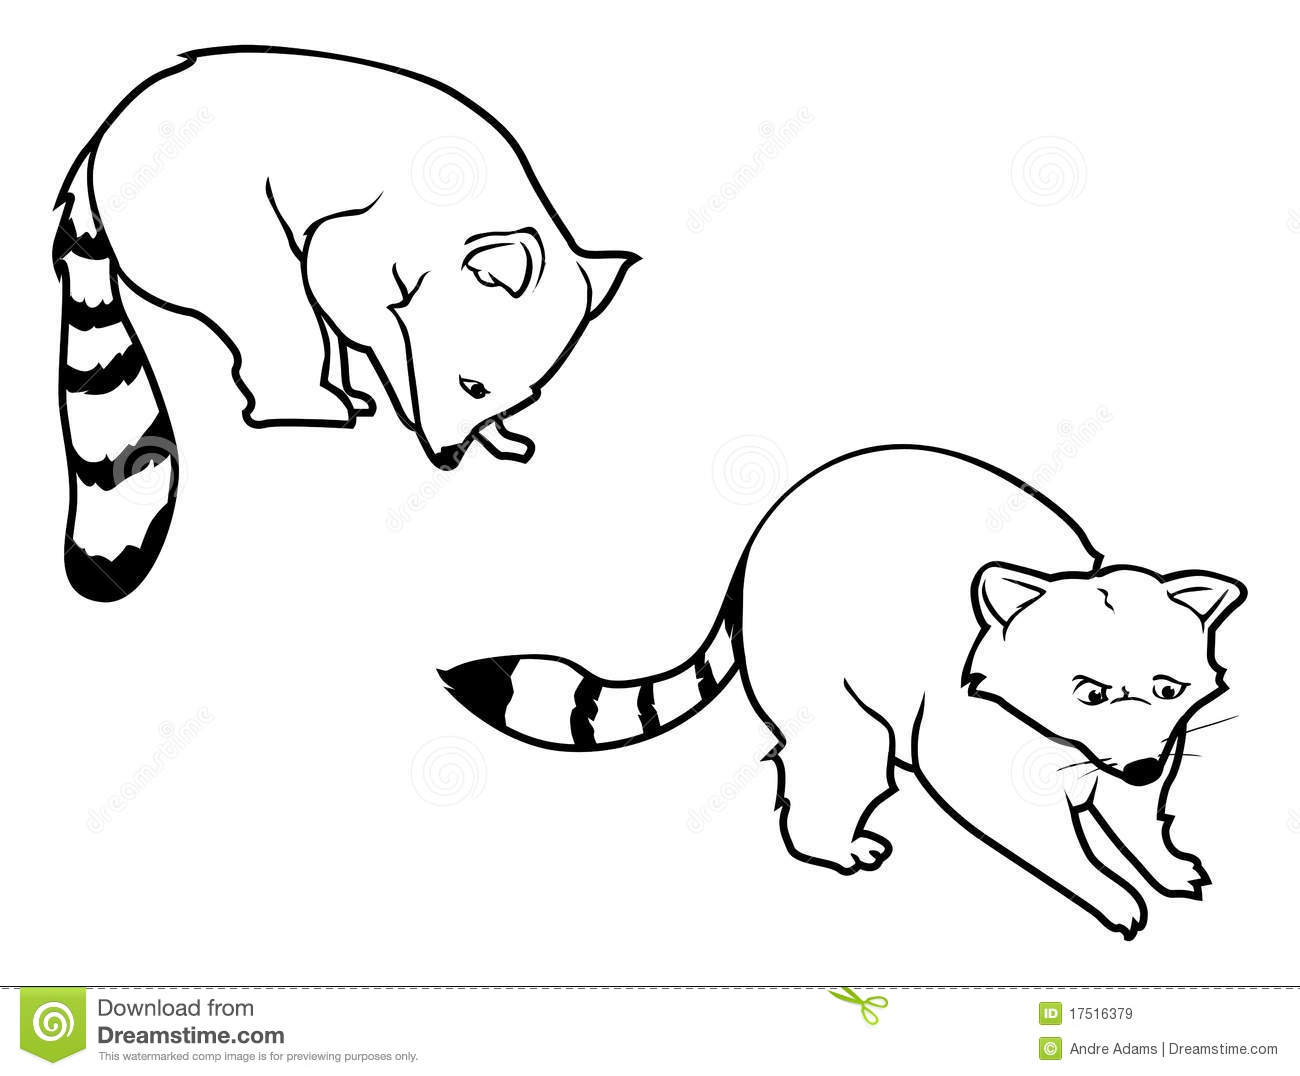 Line Drawing Raccoon : Raccoon outlines royalty free stock images image